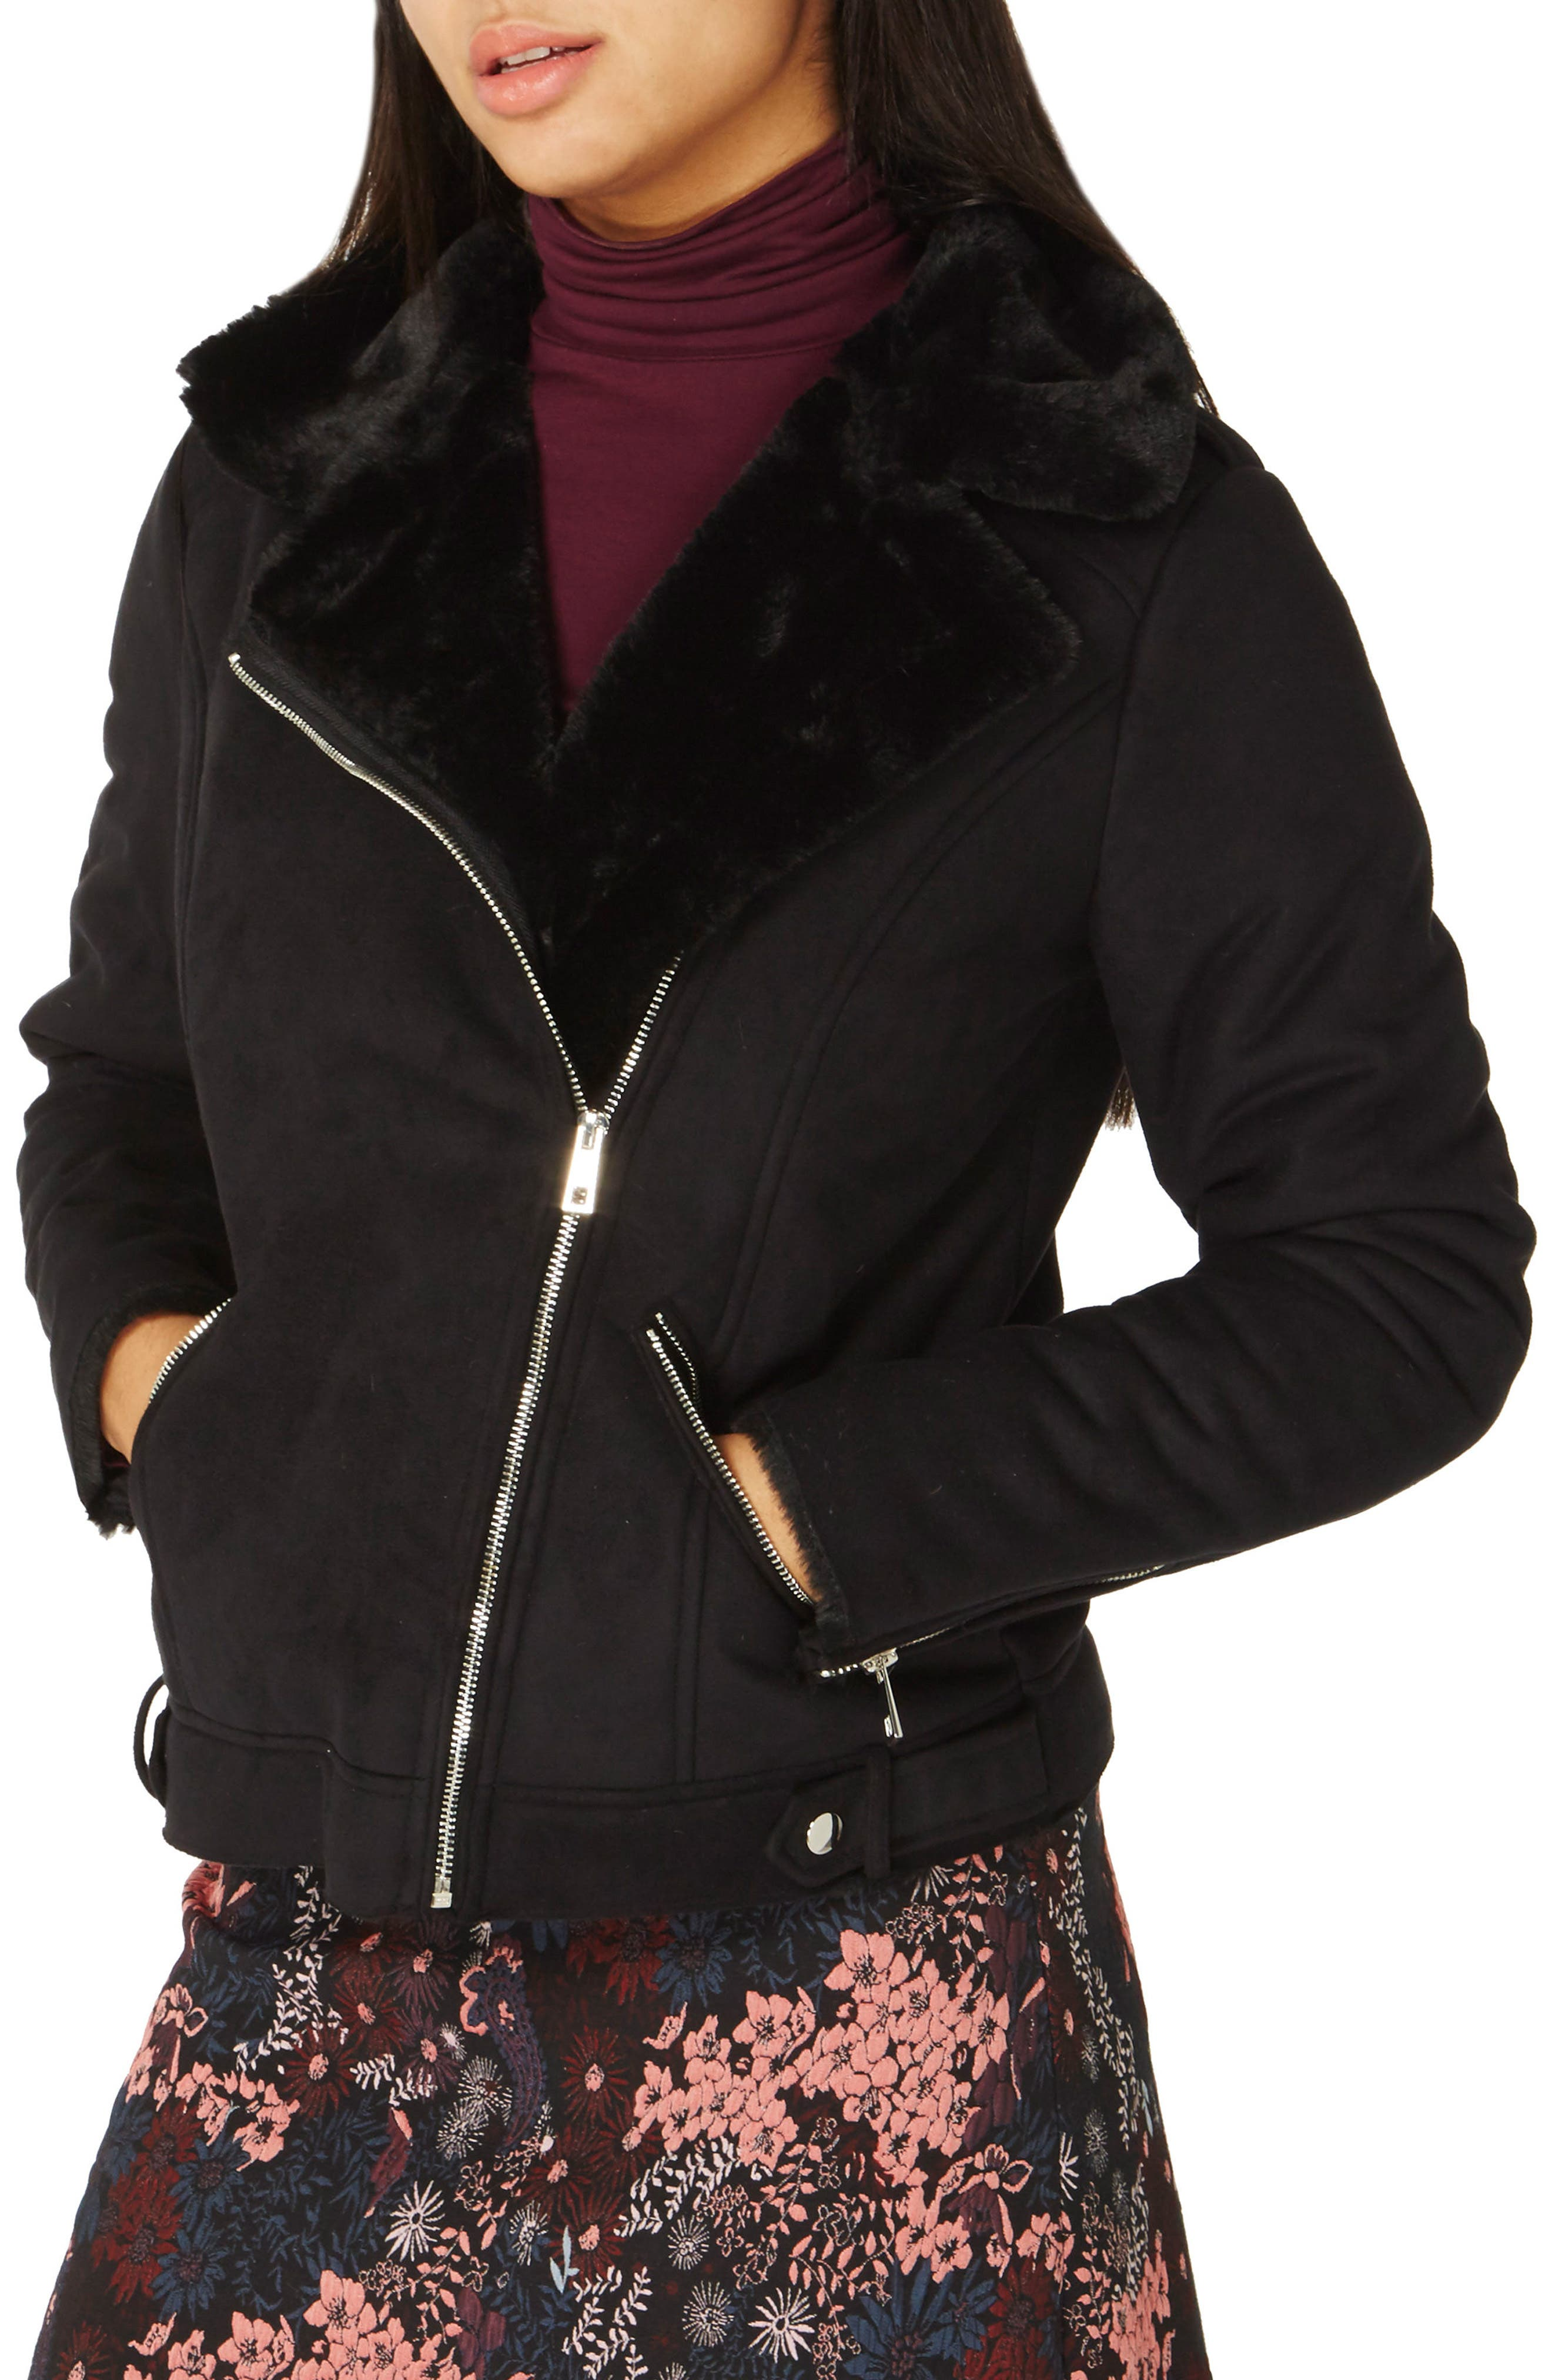 Alternate Image 1 Selected - Dorothy Perkins Faux Suede Biker Jacket with Faux Shearling Trim